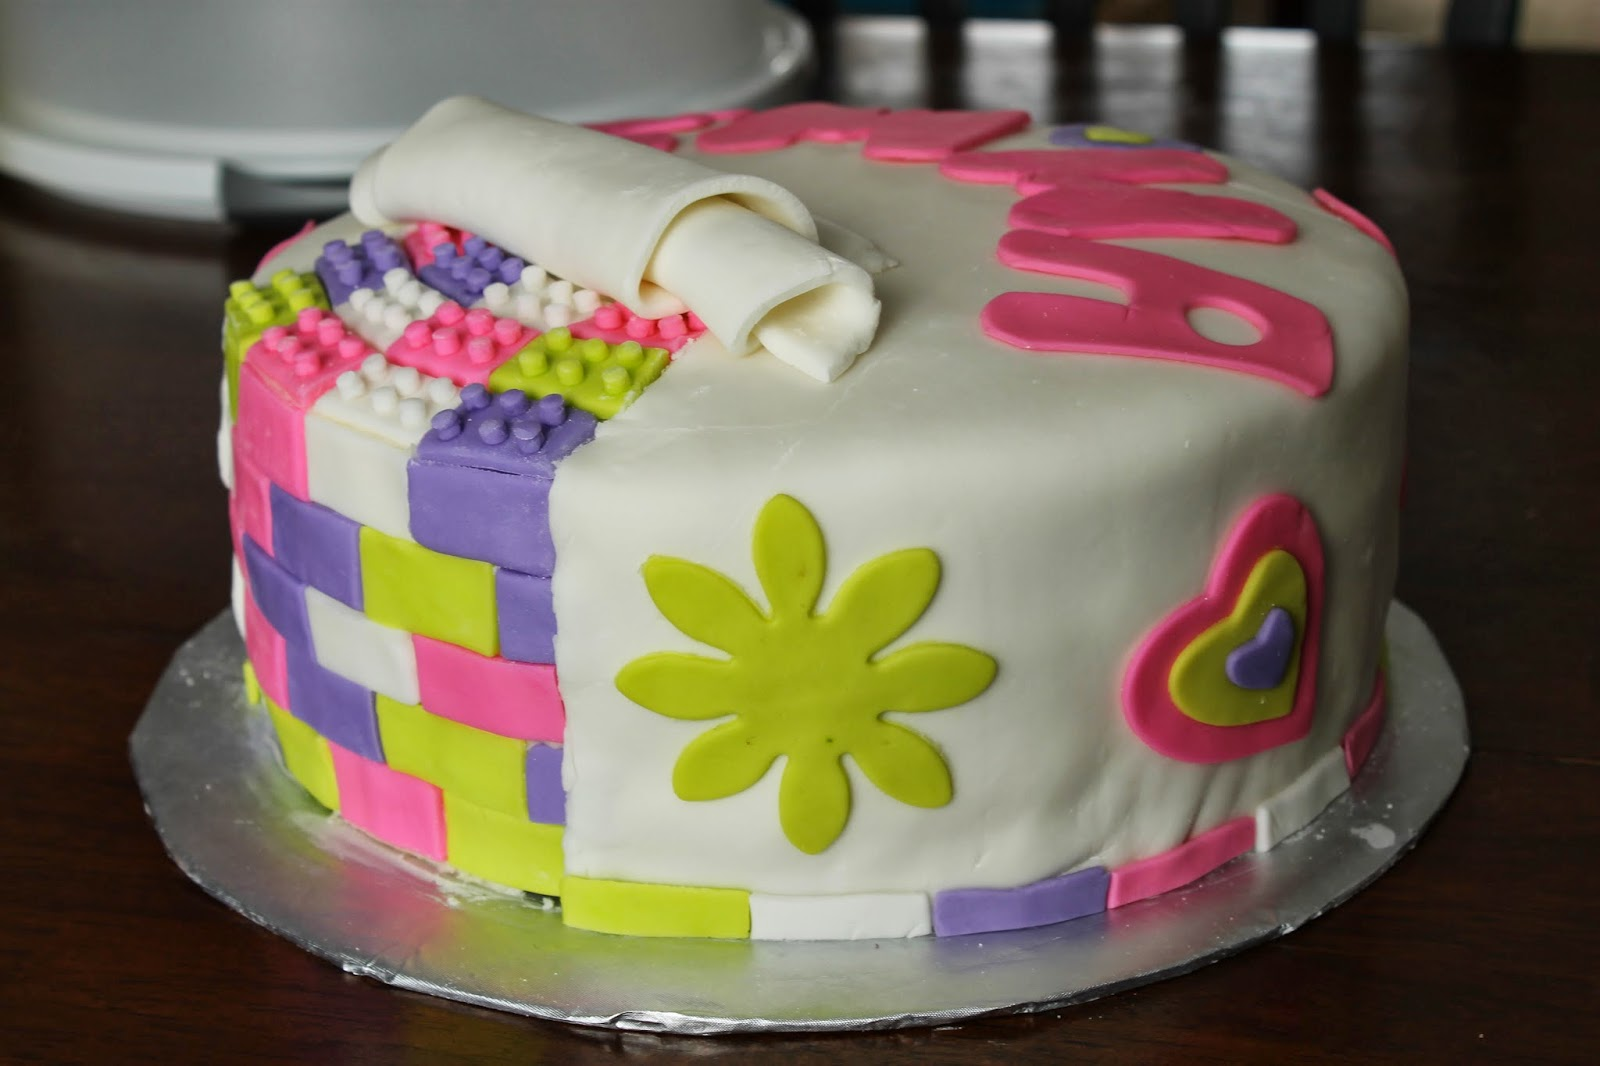 Cake Images For Friends : 2 nuggets bakery: Lego Friends Cake